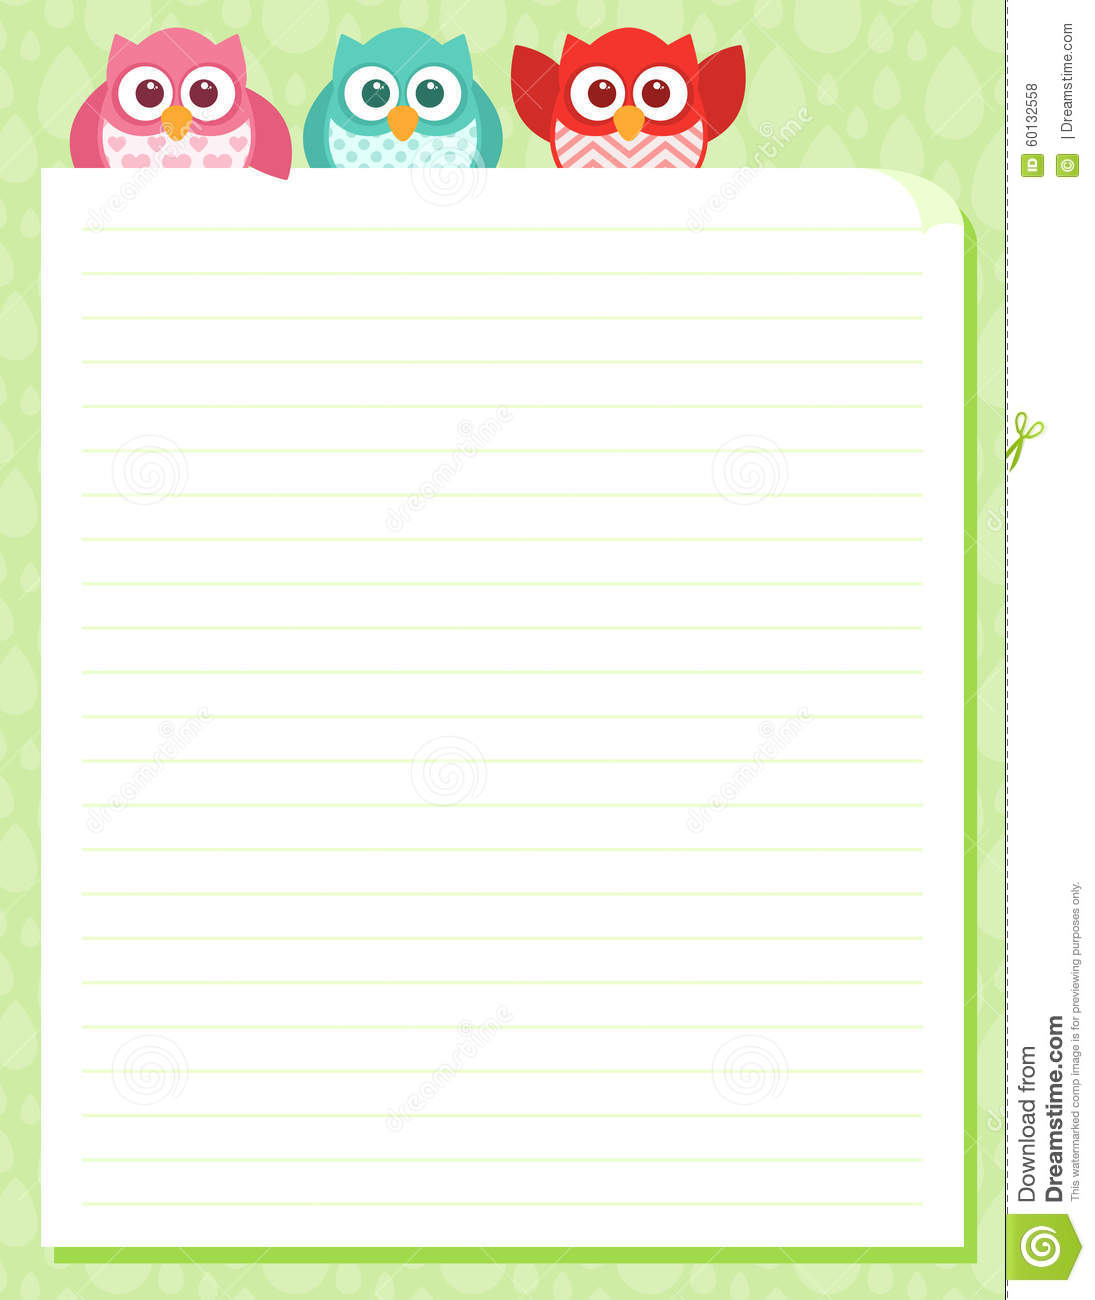 cute simple cartoon patterned owls stationery template